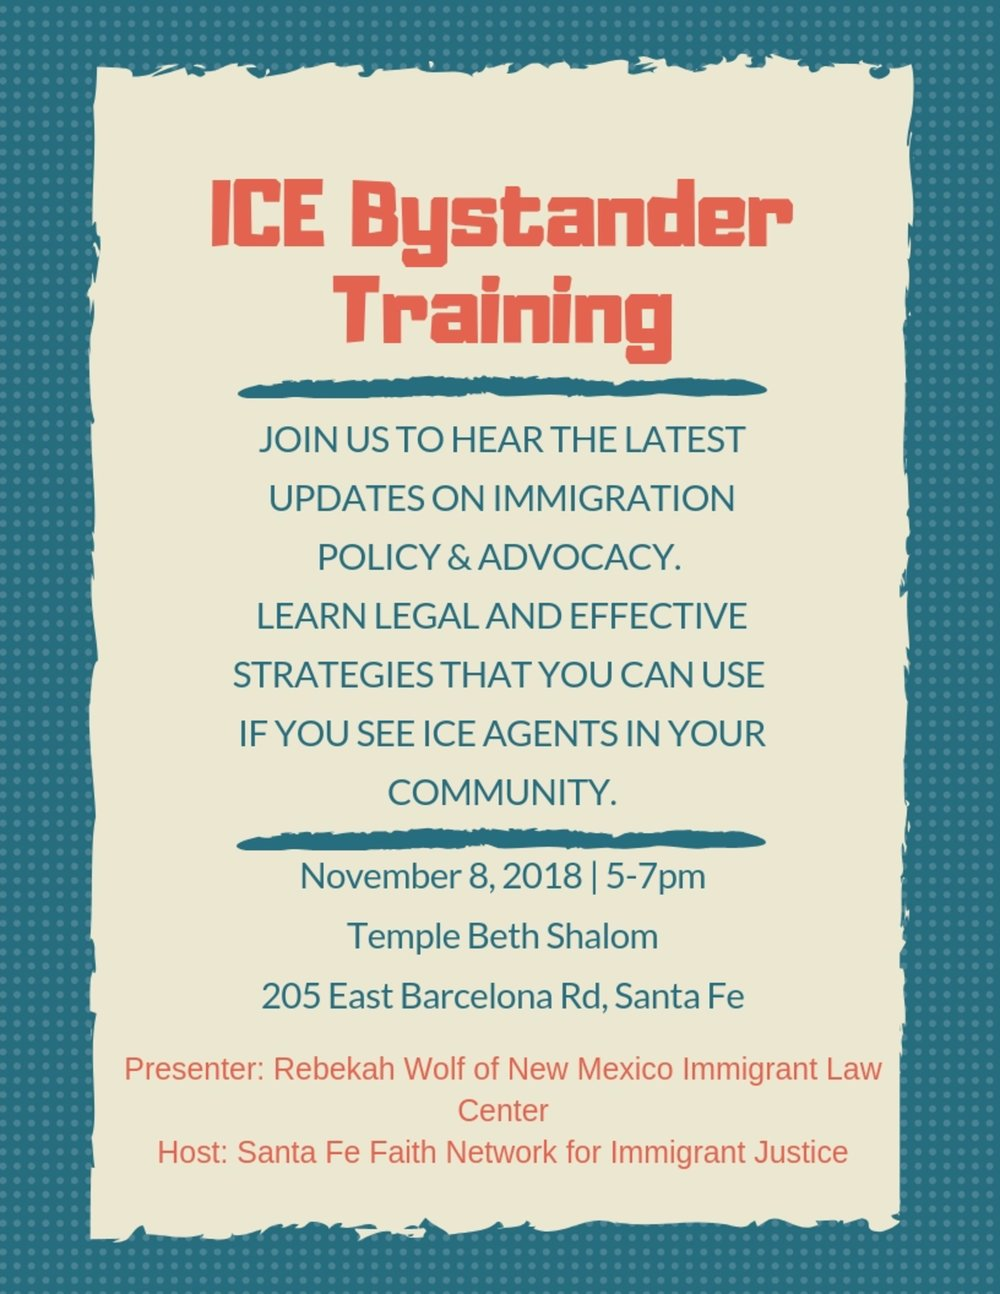 ICE Bystander Training.jpg